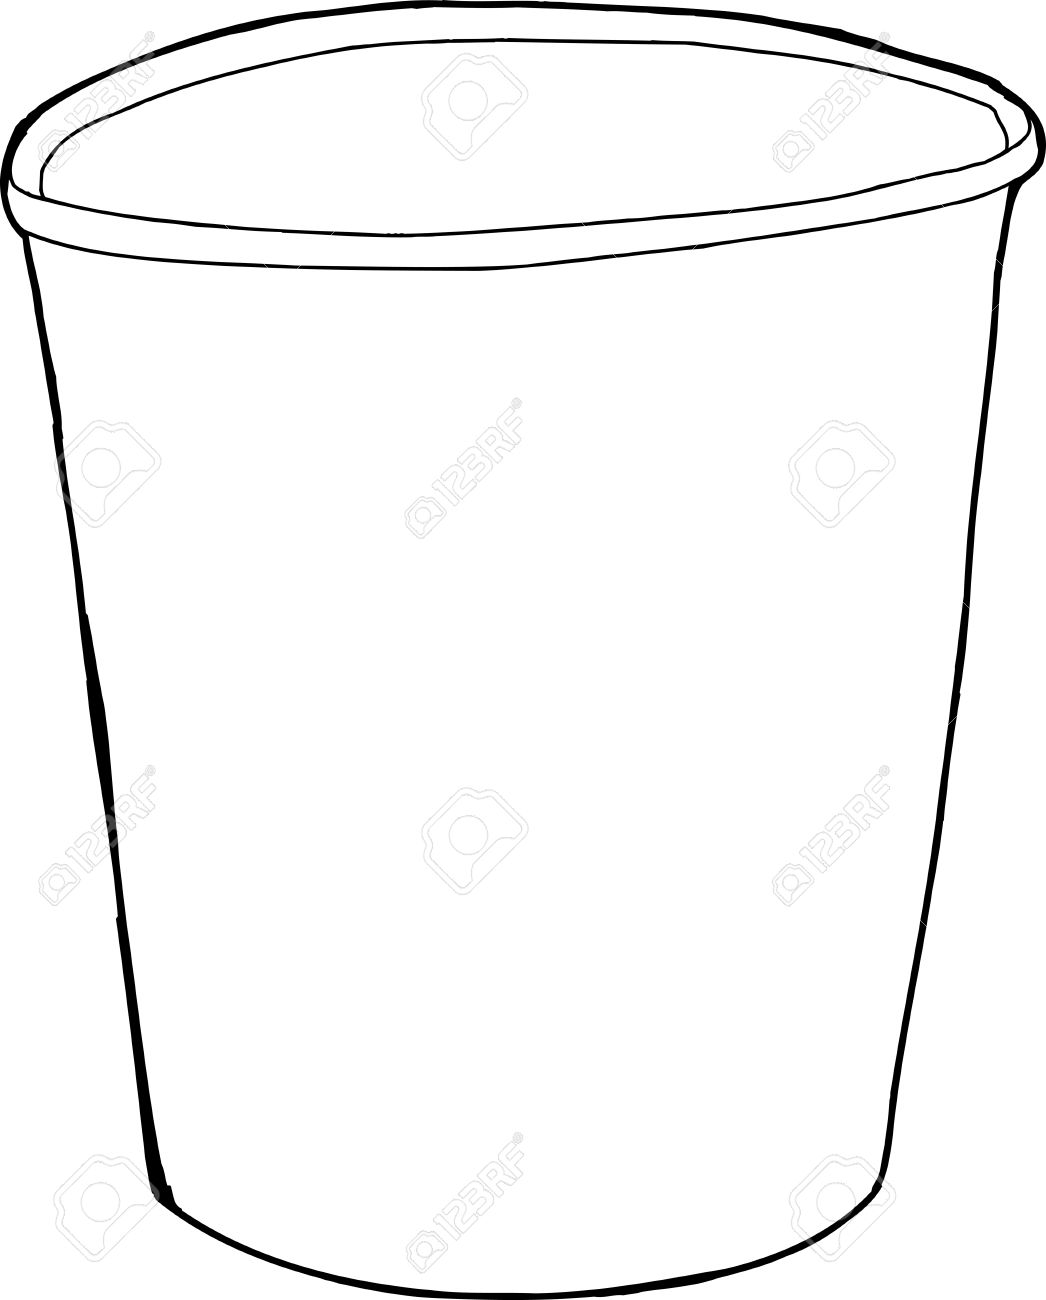 Single empty cup outline drawing over white background.